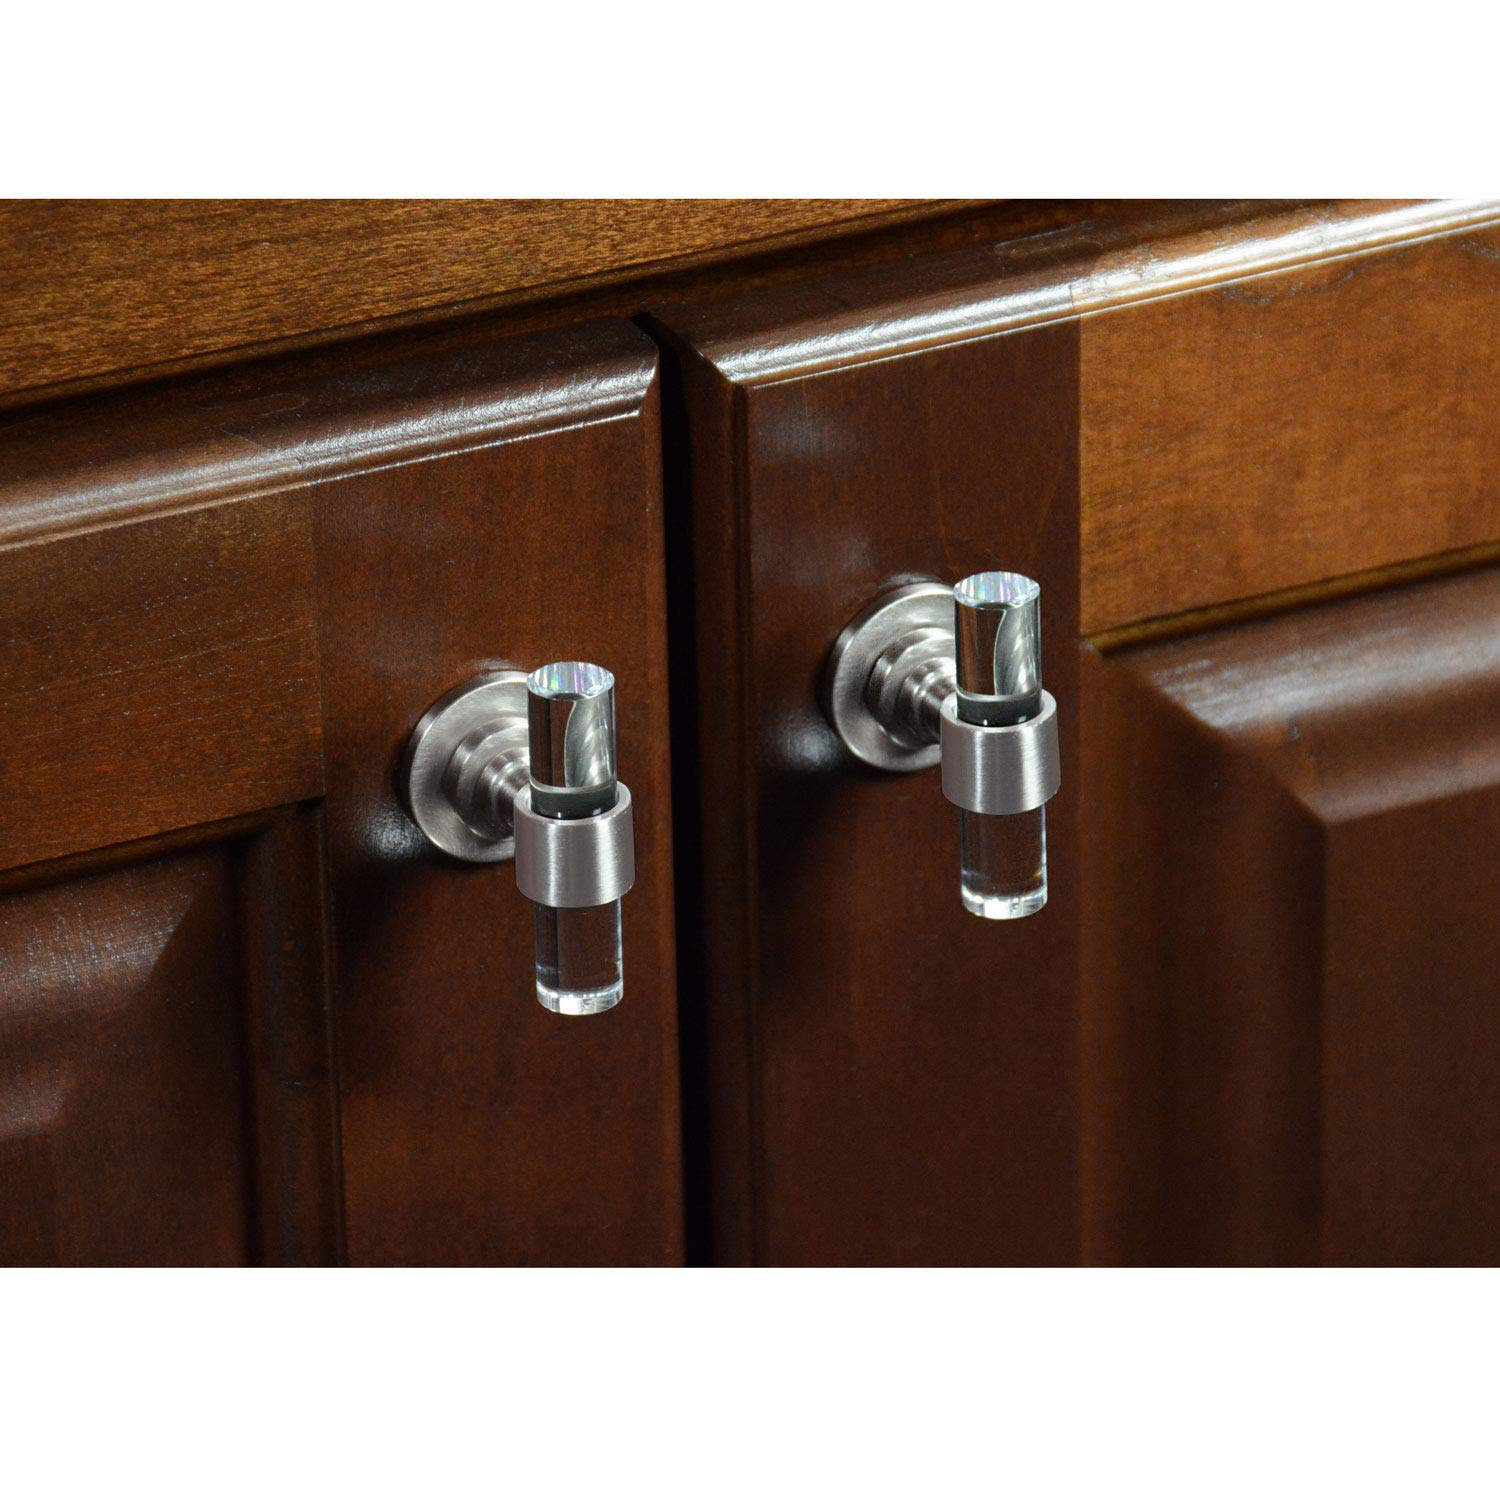 CKP Brand #750 Charlotte Collection T-Knob, Brushed Nickel/Clear - 10 Pack by CKP (Image #5)